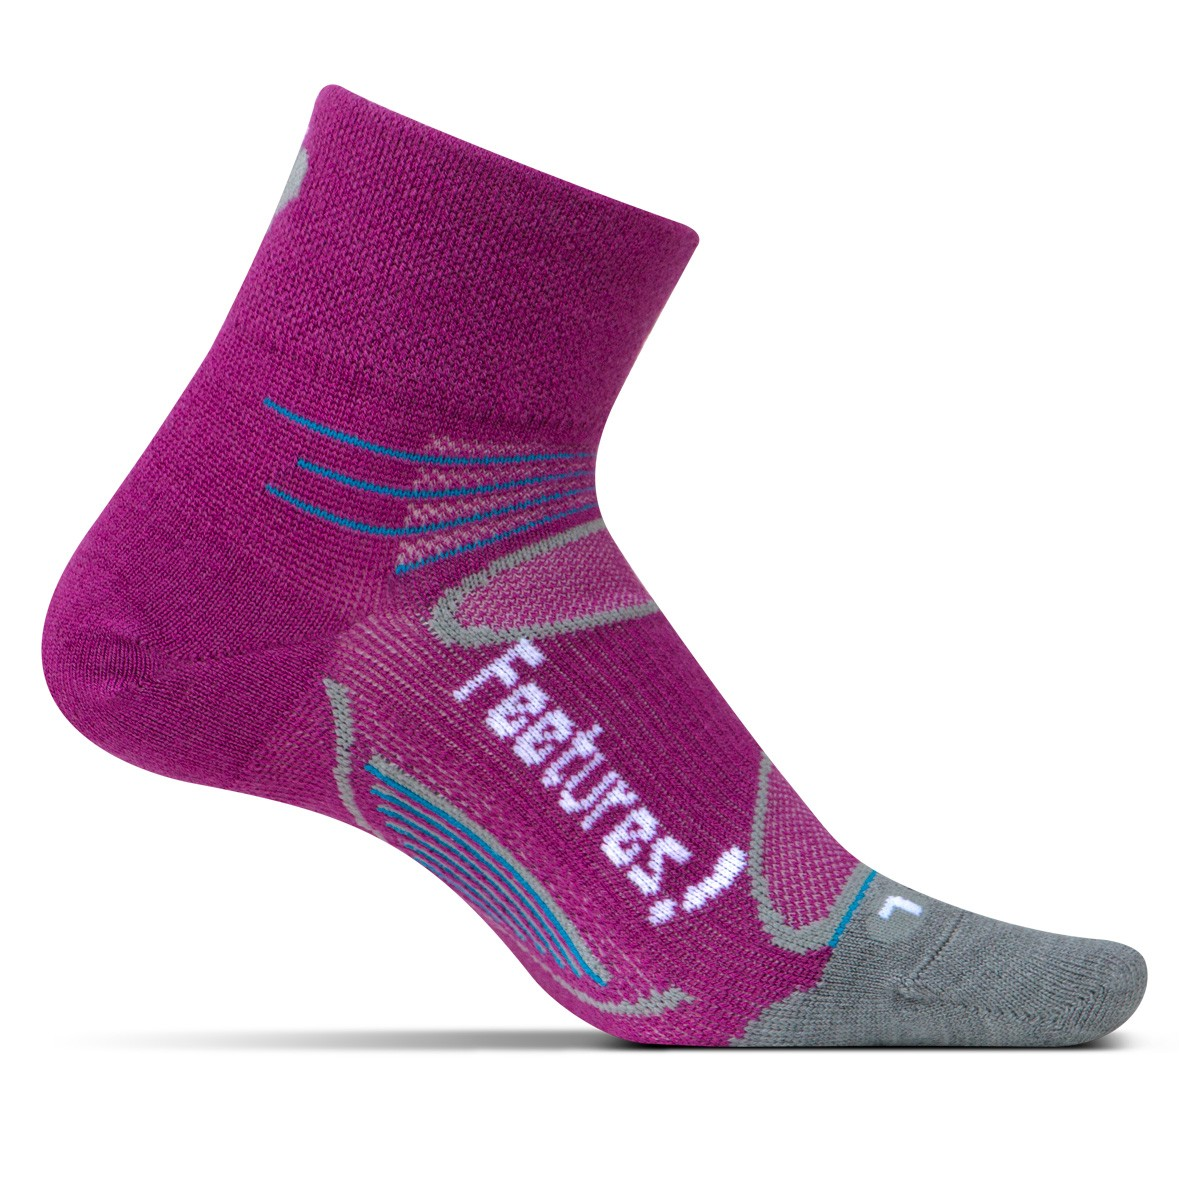 Feetures Elite Merino+ Ultra-Light Quarter - MERINO+ UL Q